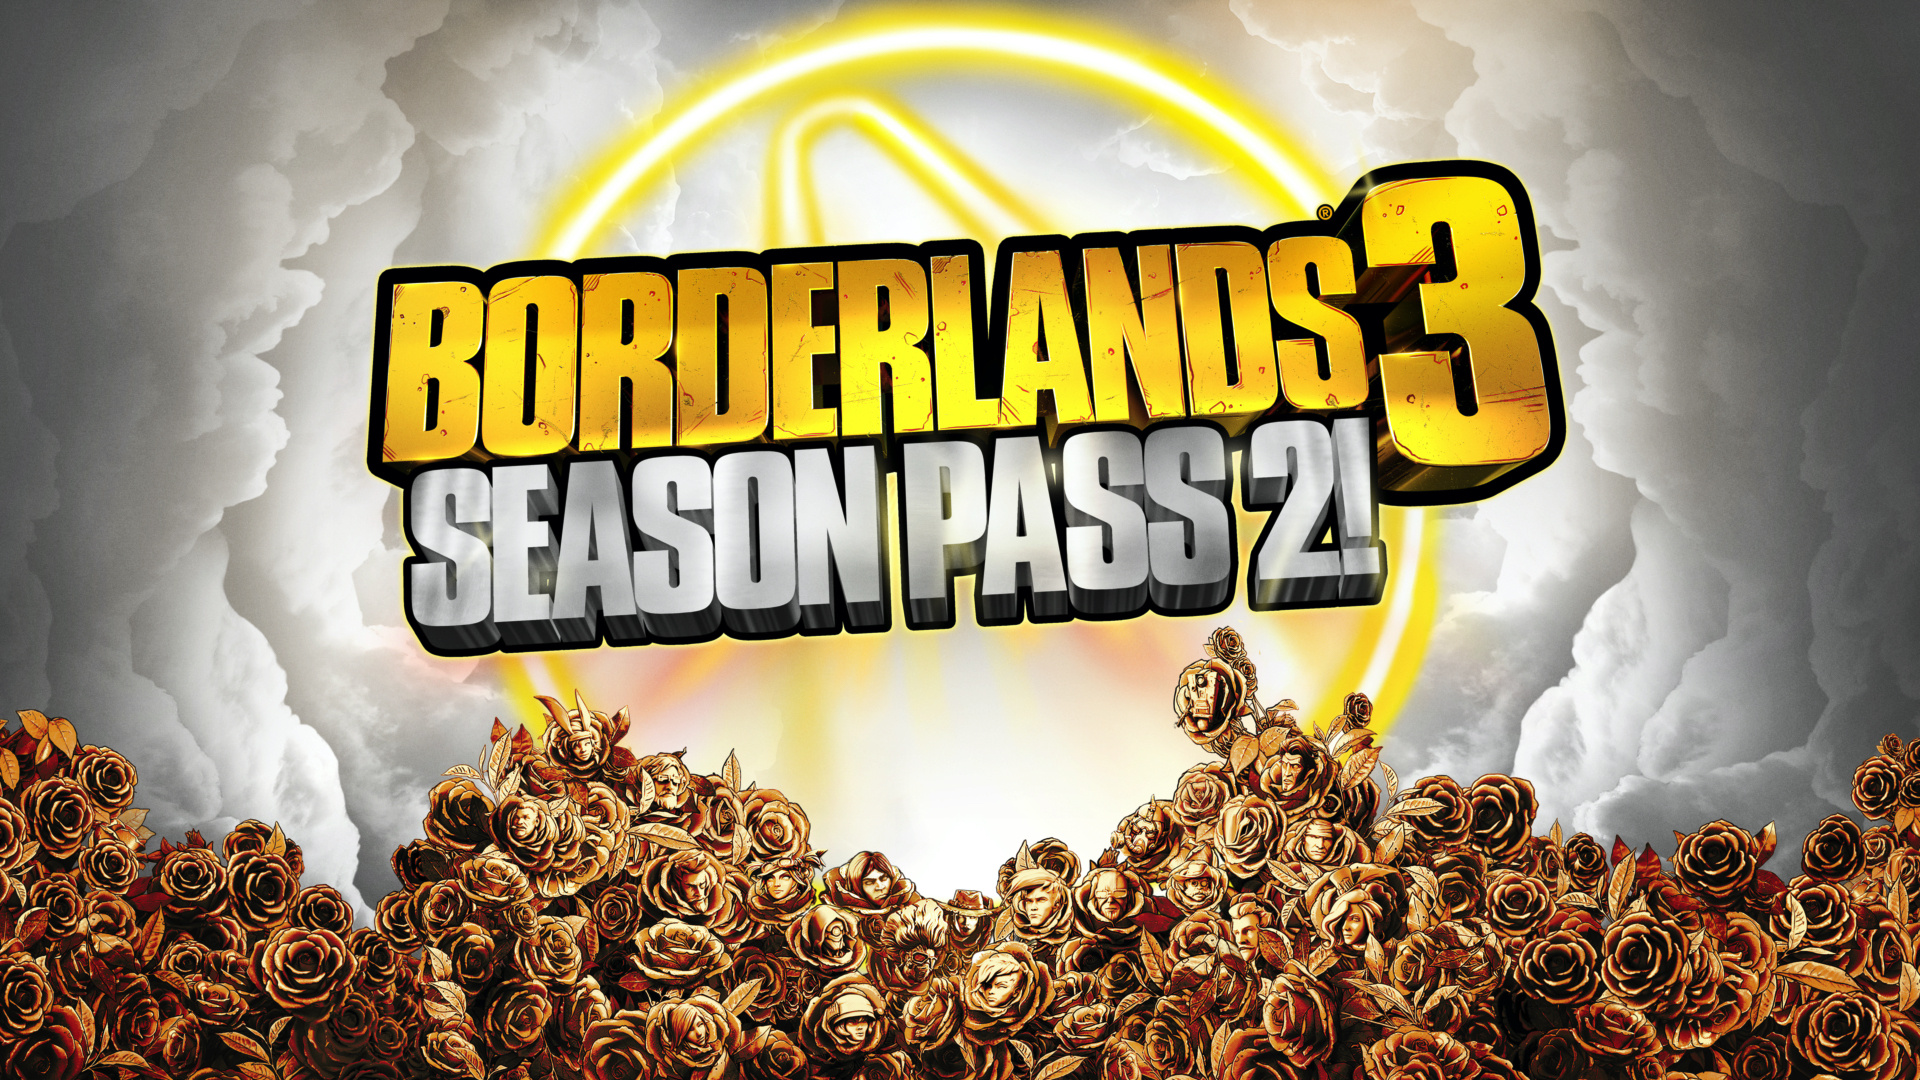 Borderlands 3's next season pass launches alongside next-gen upgrade